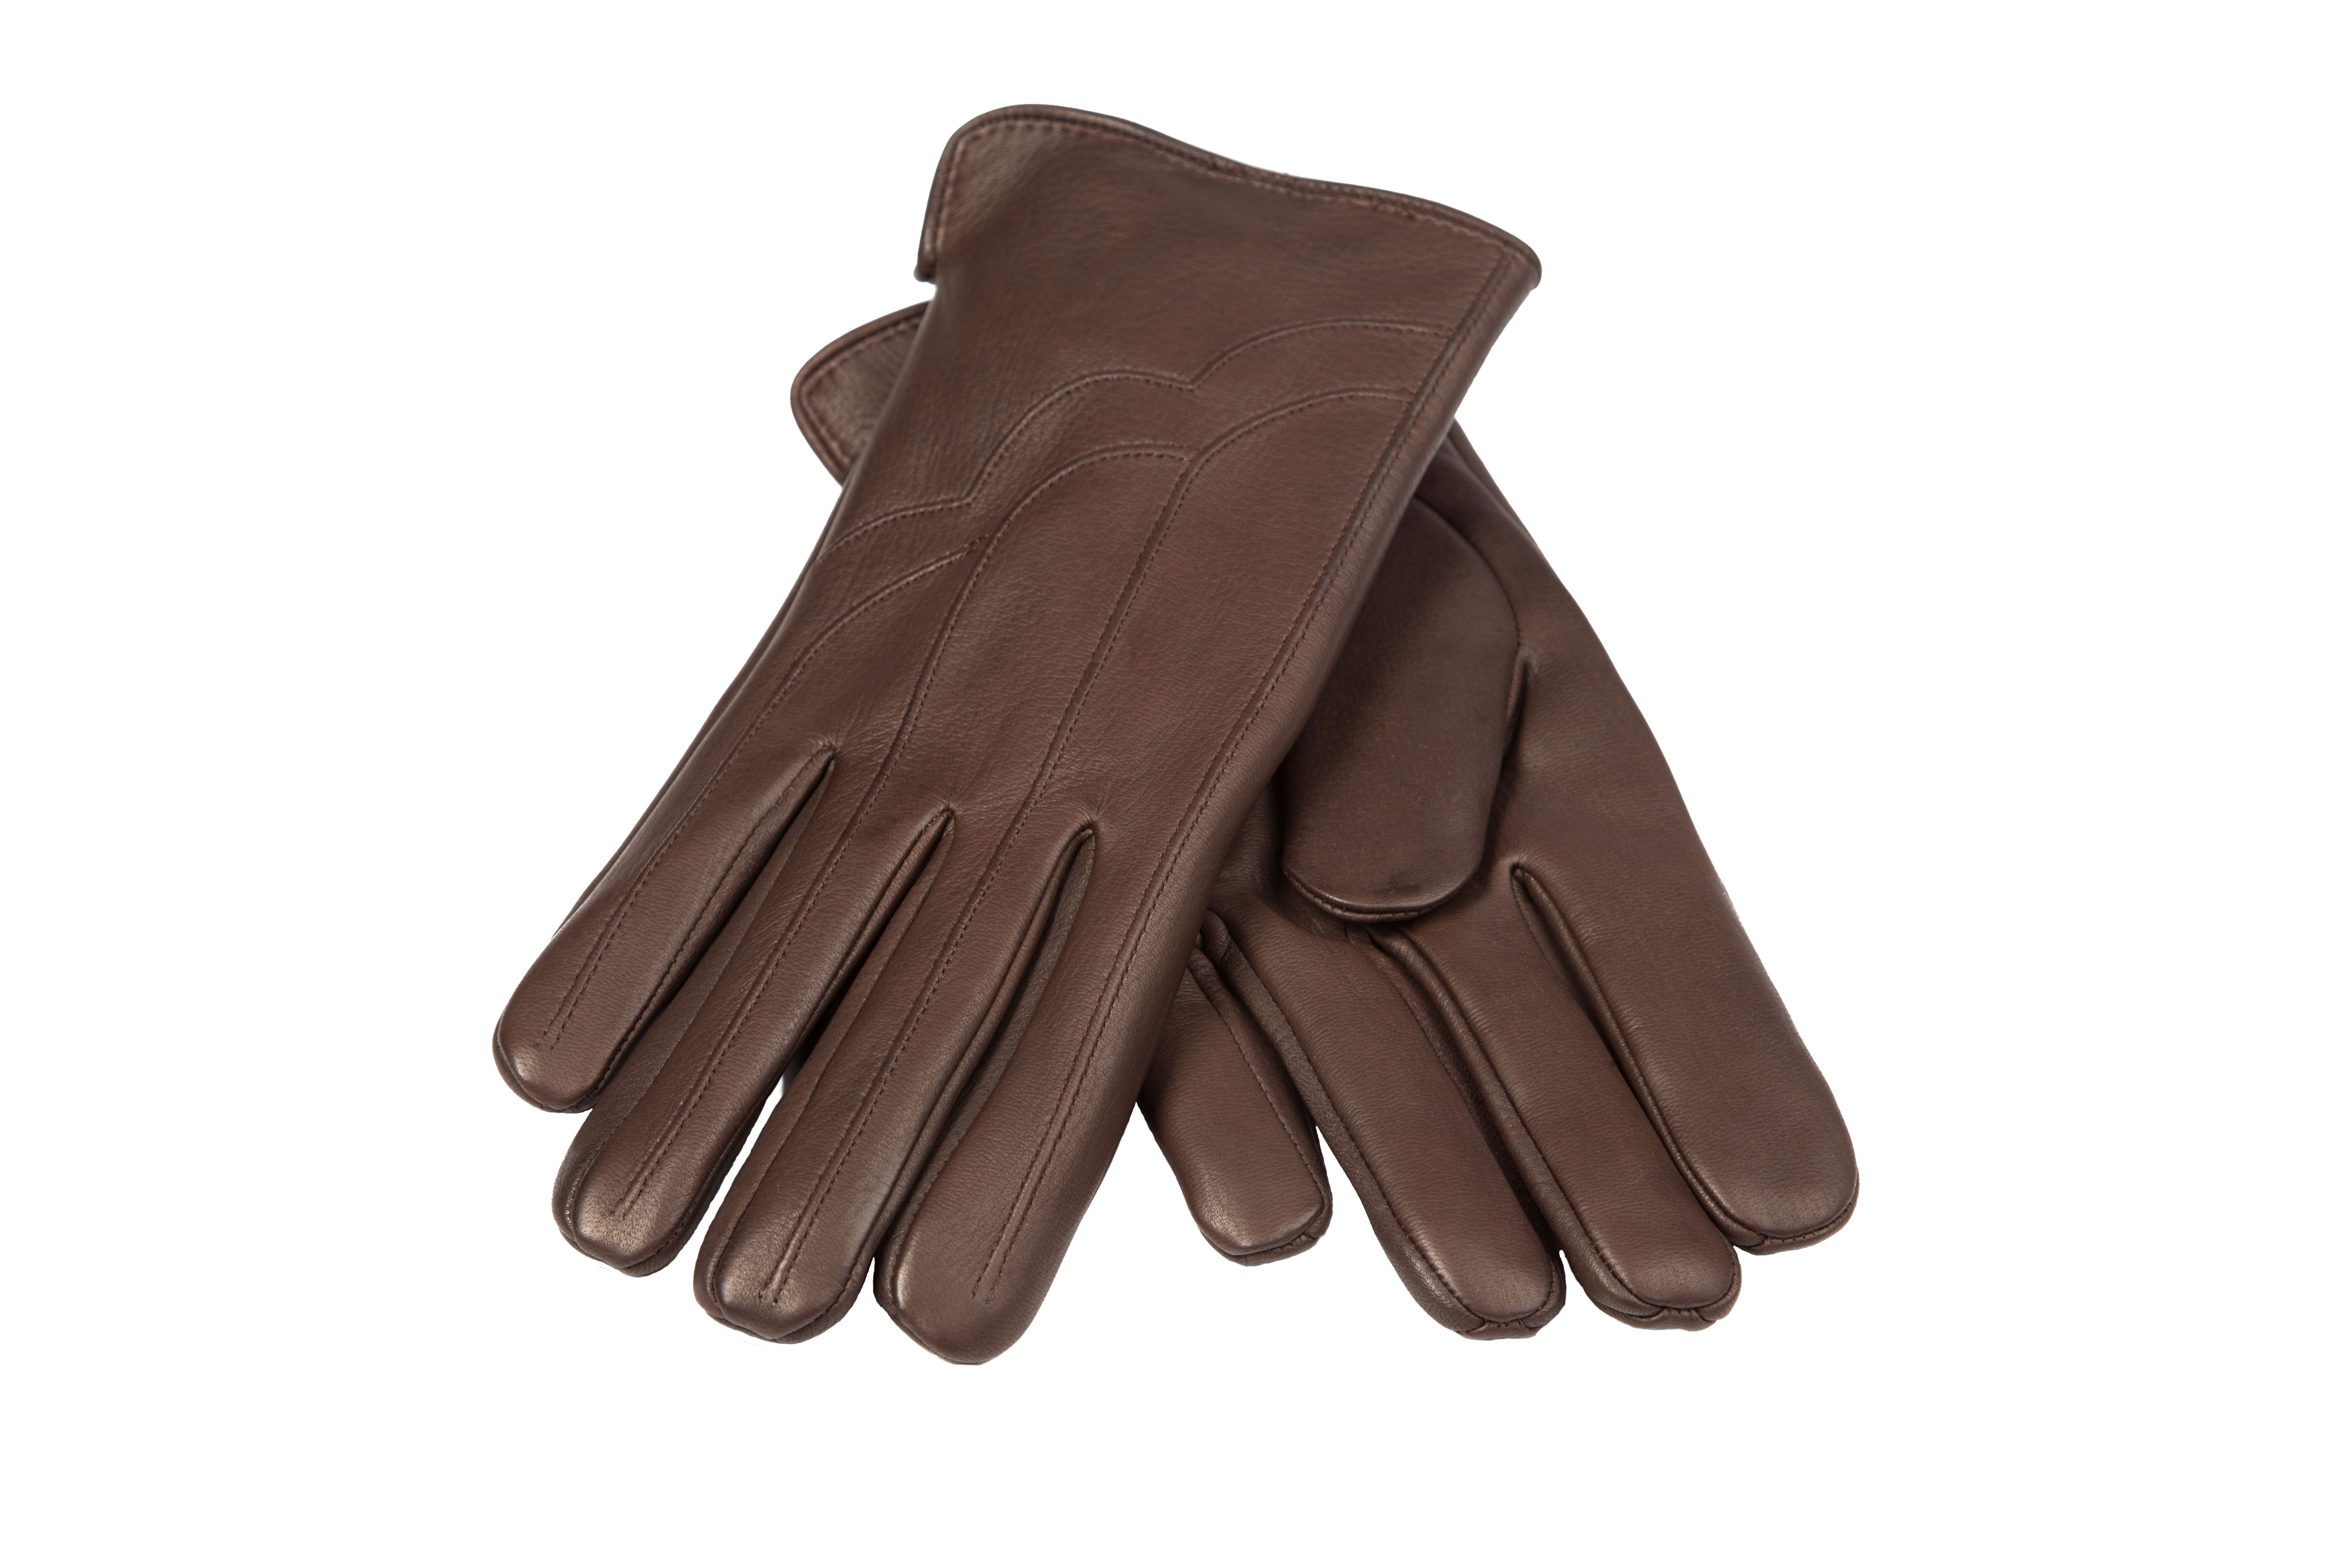 The Royals – Men's Deer-Leather Dress Gloves with Long ...